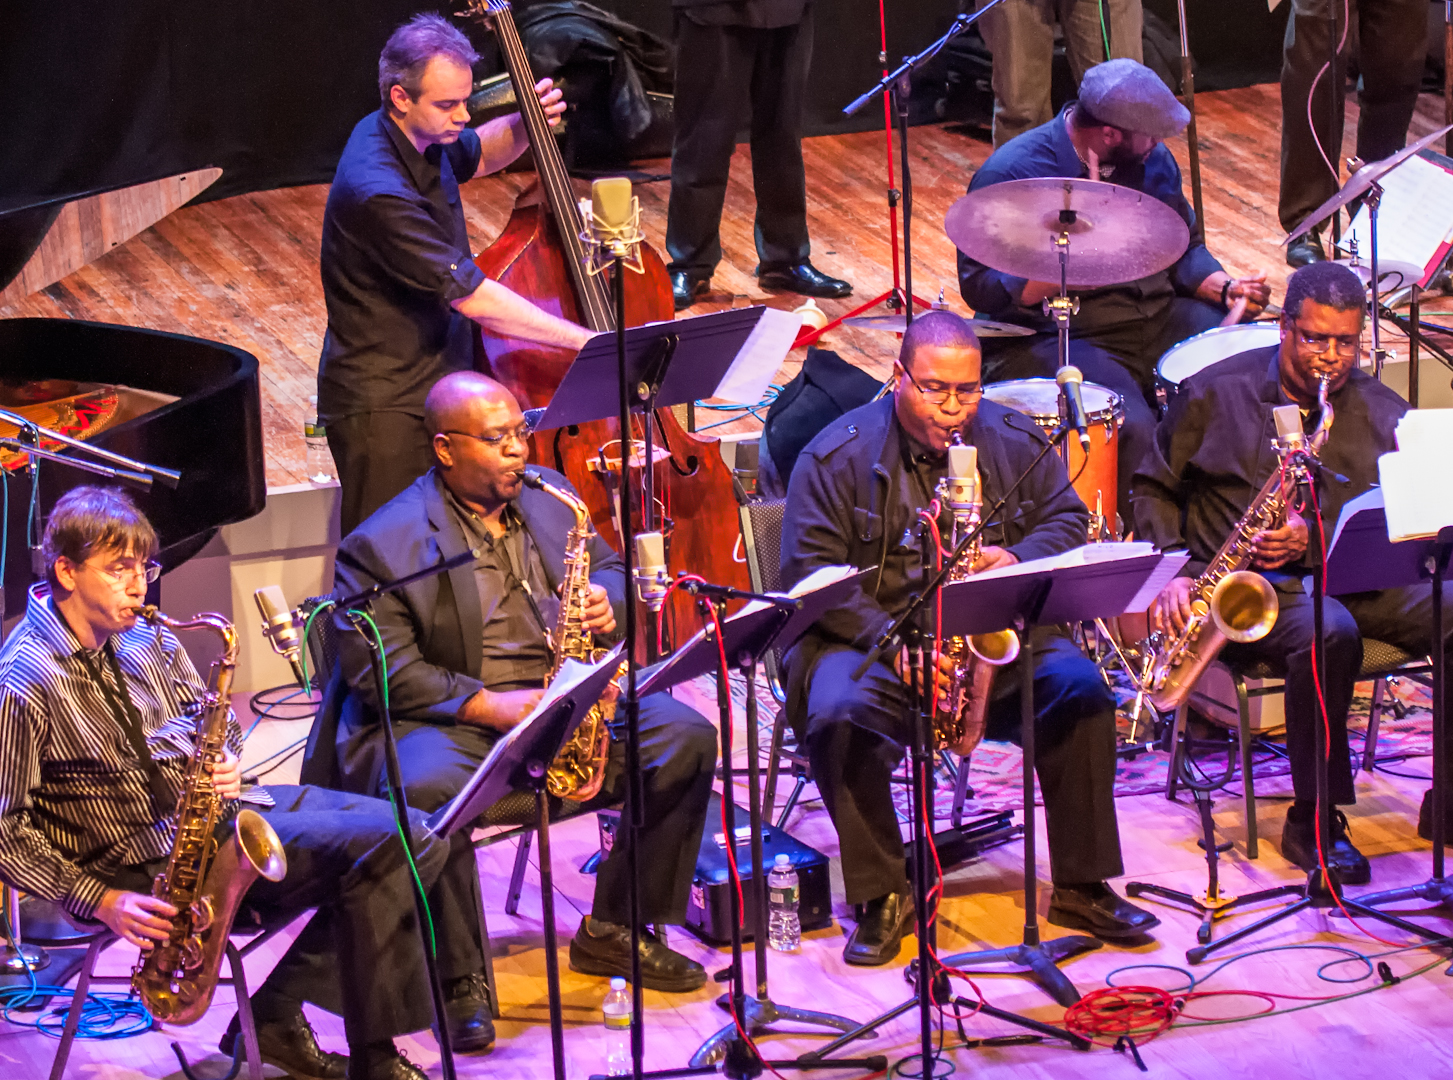 Mike Lee, Darius Jones, Bruce Williams, Jason Steward, Robert Sabin (Bass) and Chris Beck (Drums) with the Oliver Lake Big Band at Roulette